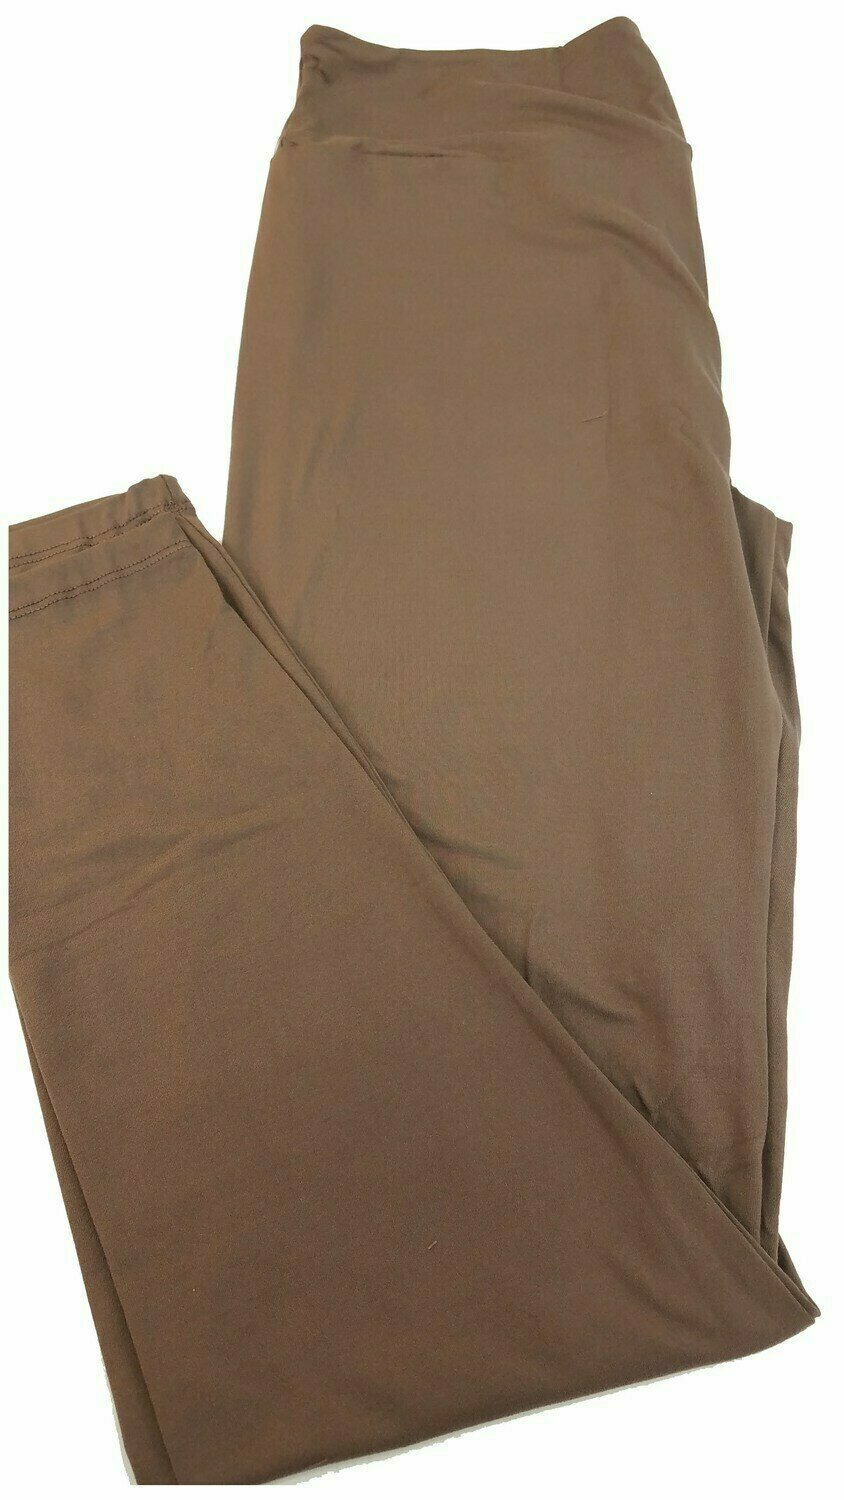 One Size (OS) Solid Deep Taupe LuLaRoe Adult Womens Leggings fit Sizes 2-10